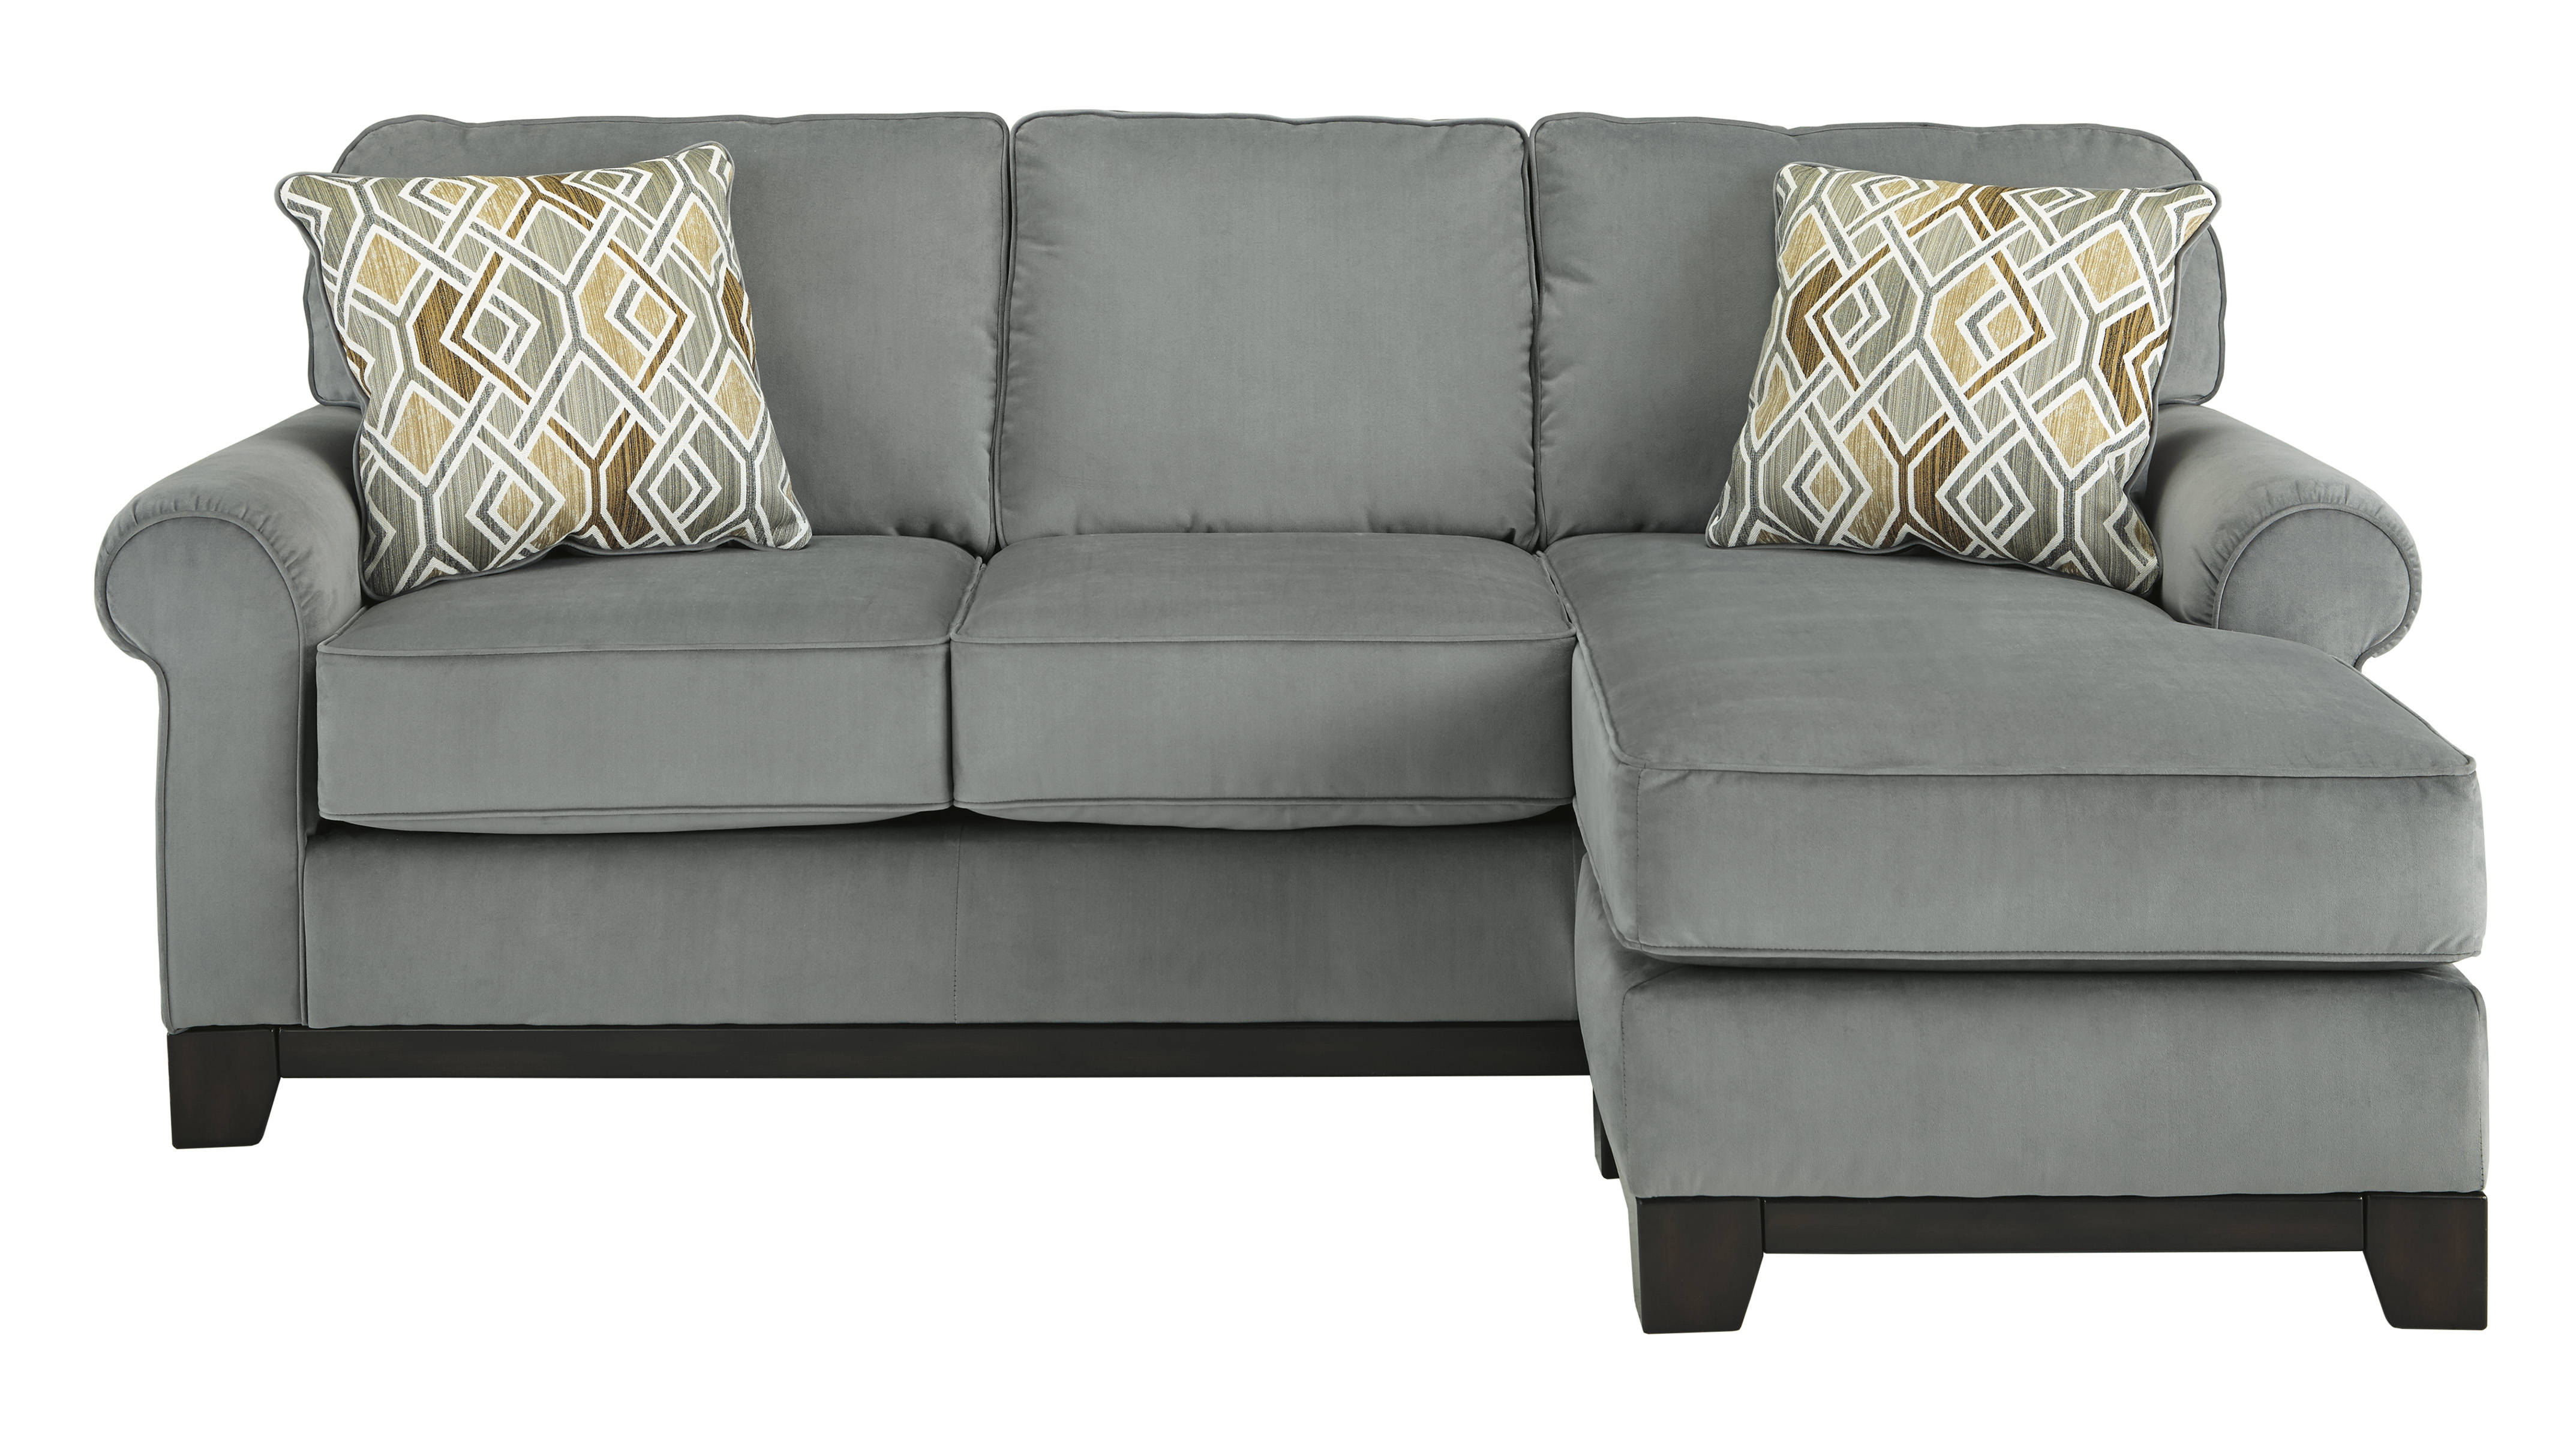 Magnificent Ashley Furniture Benld Marine Sofa Chaise The Classy Home Interior Design Ideas Ghosoteloinfo